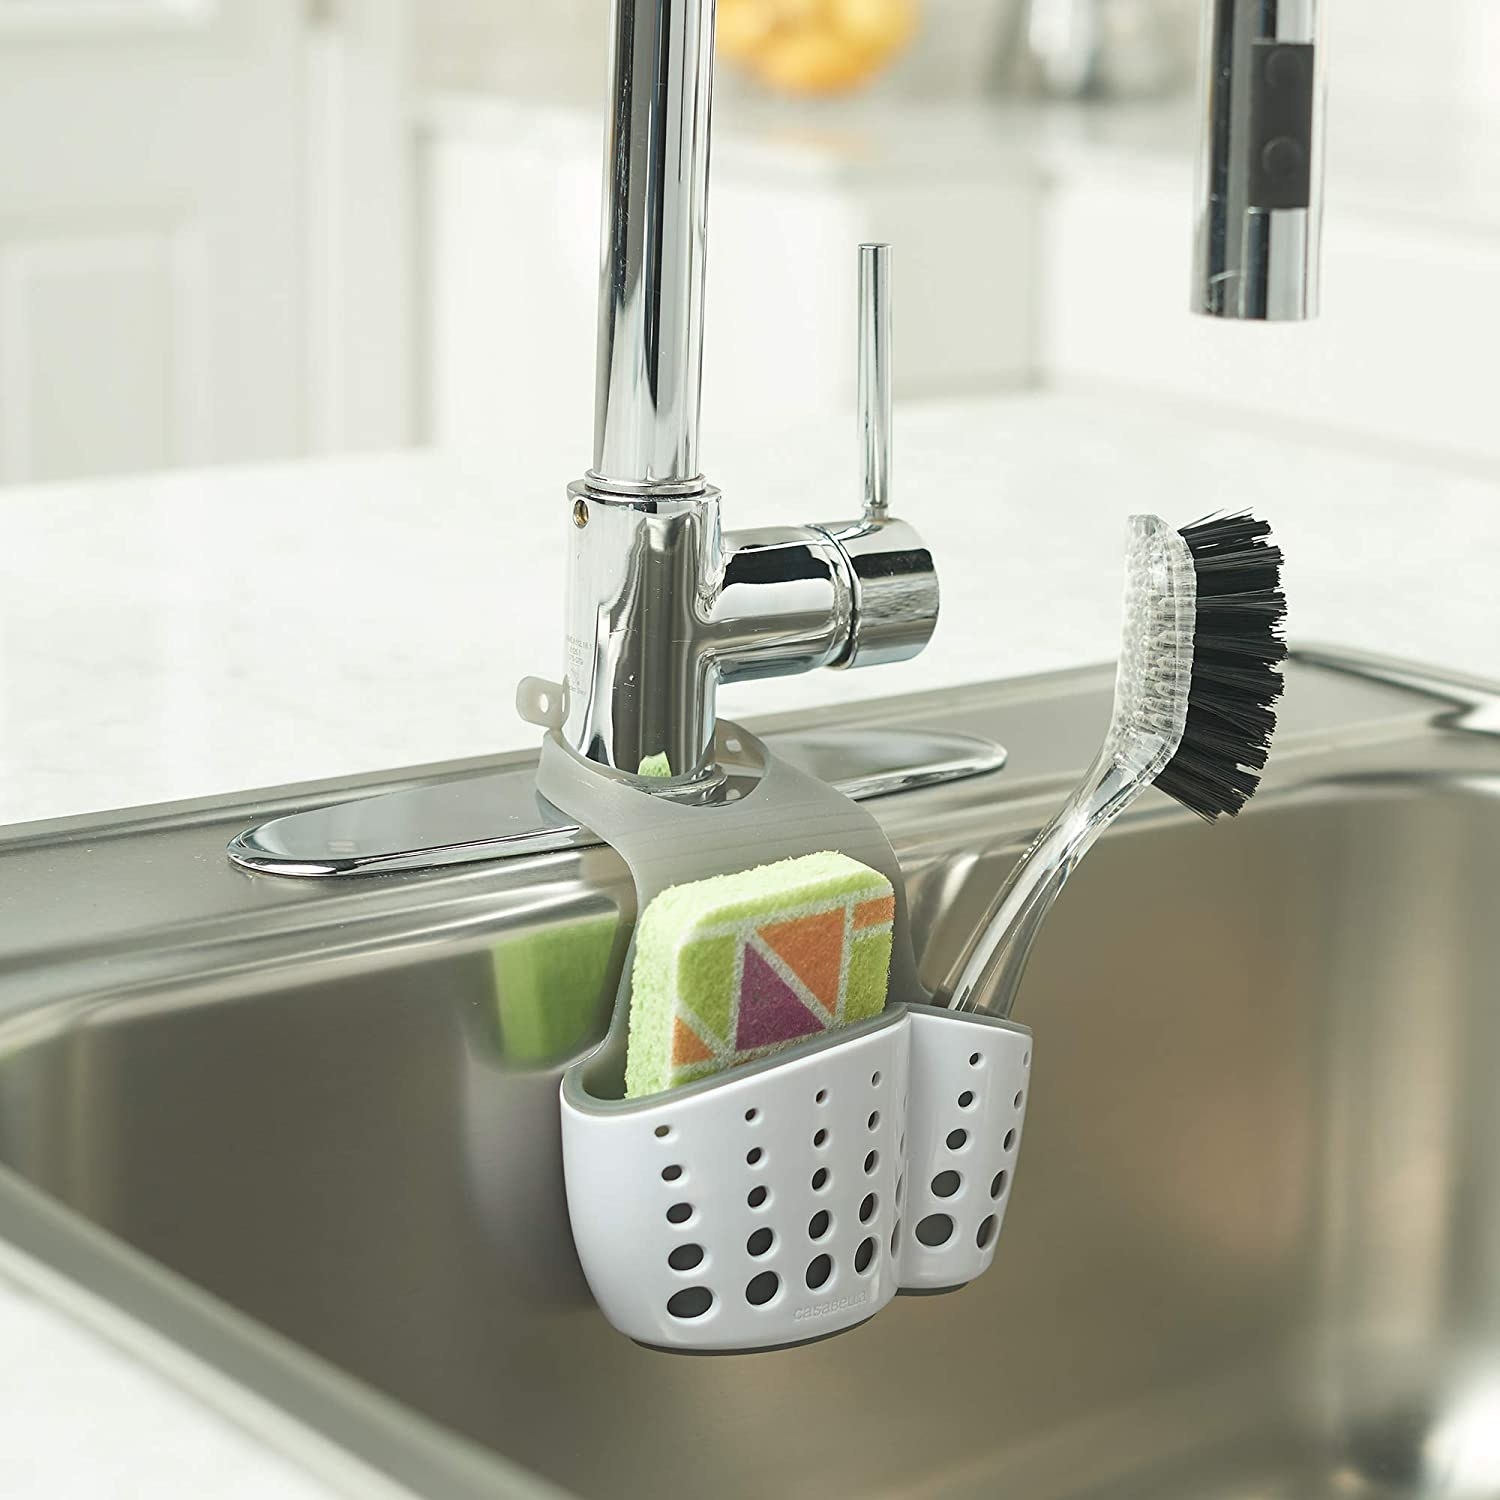 A whtie holder for a sponge and scrubber that hangs off the faucet of the sink